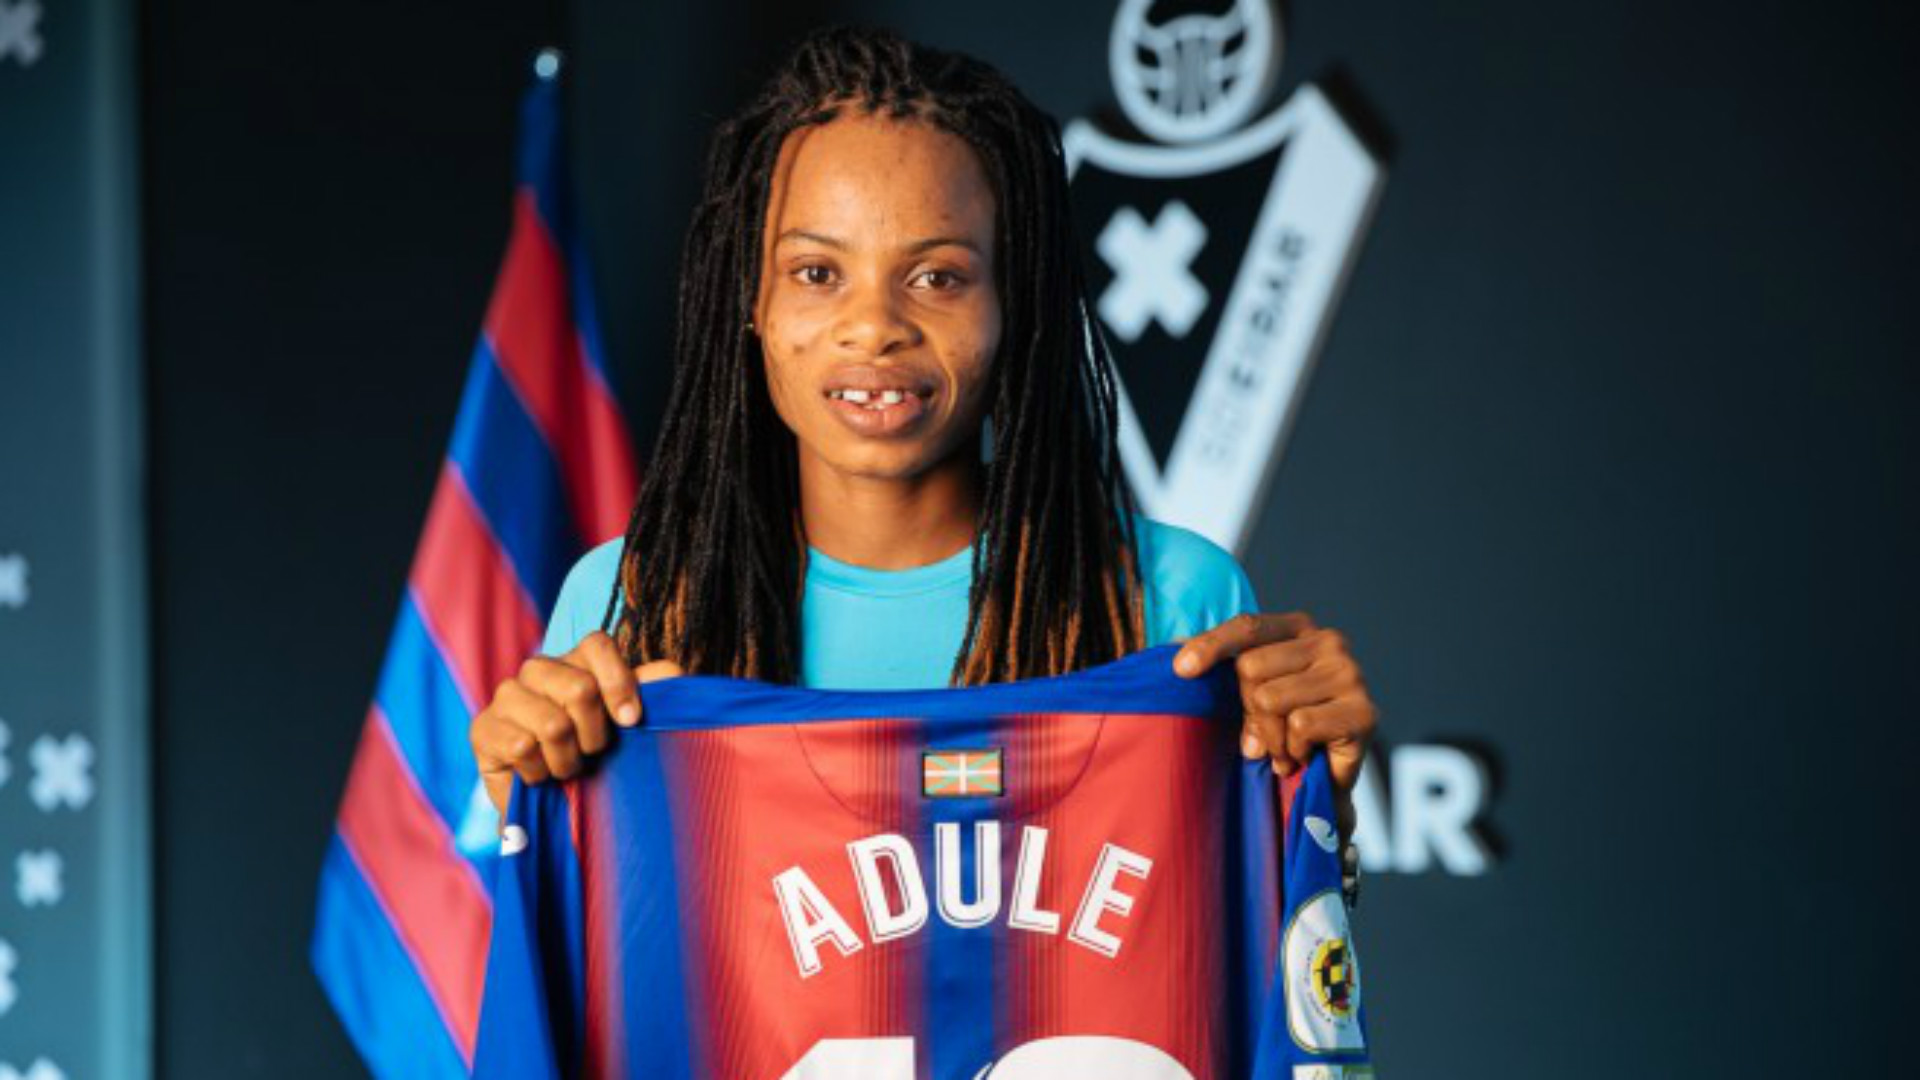 Eibar confirm Charity Adule contract extension until 2022